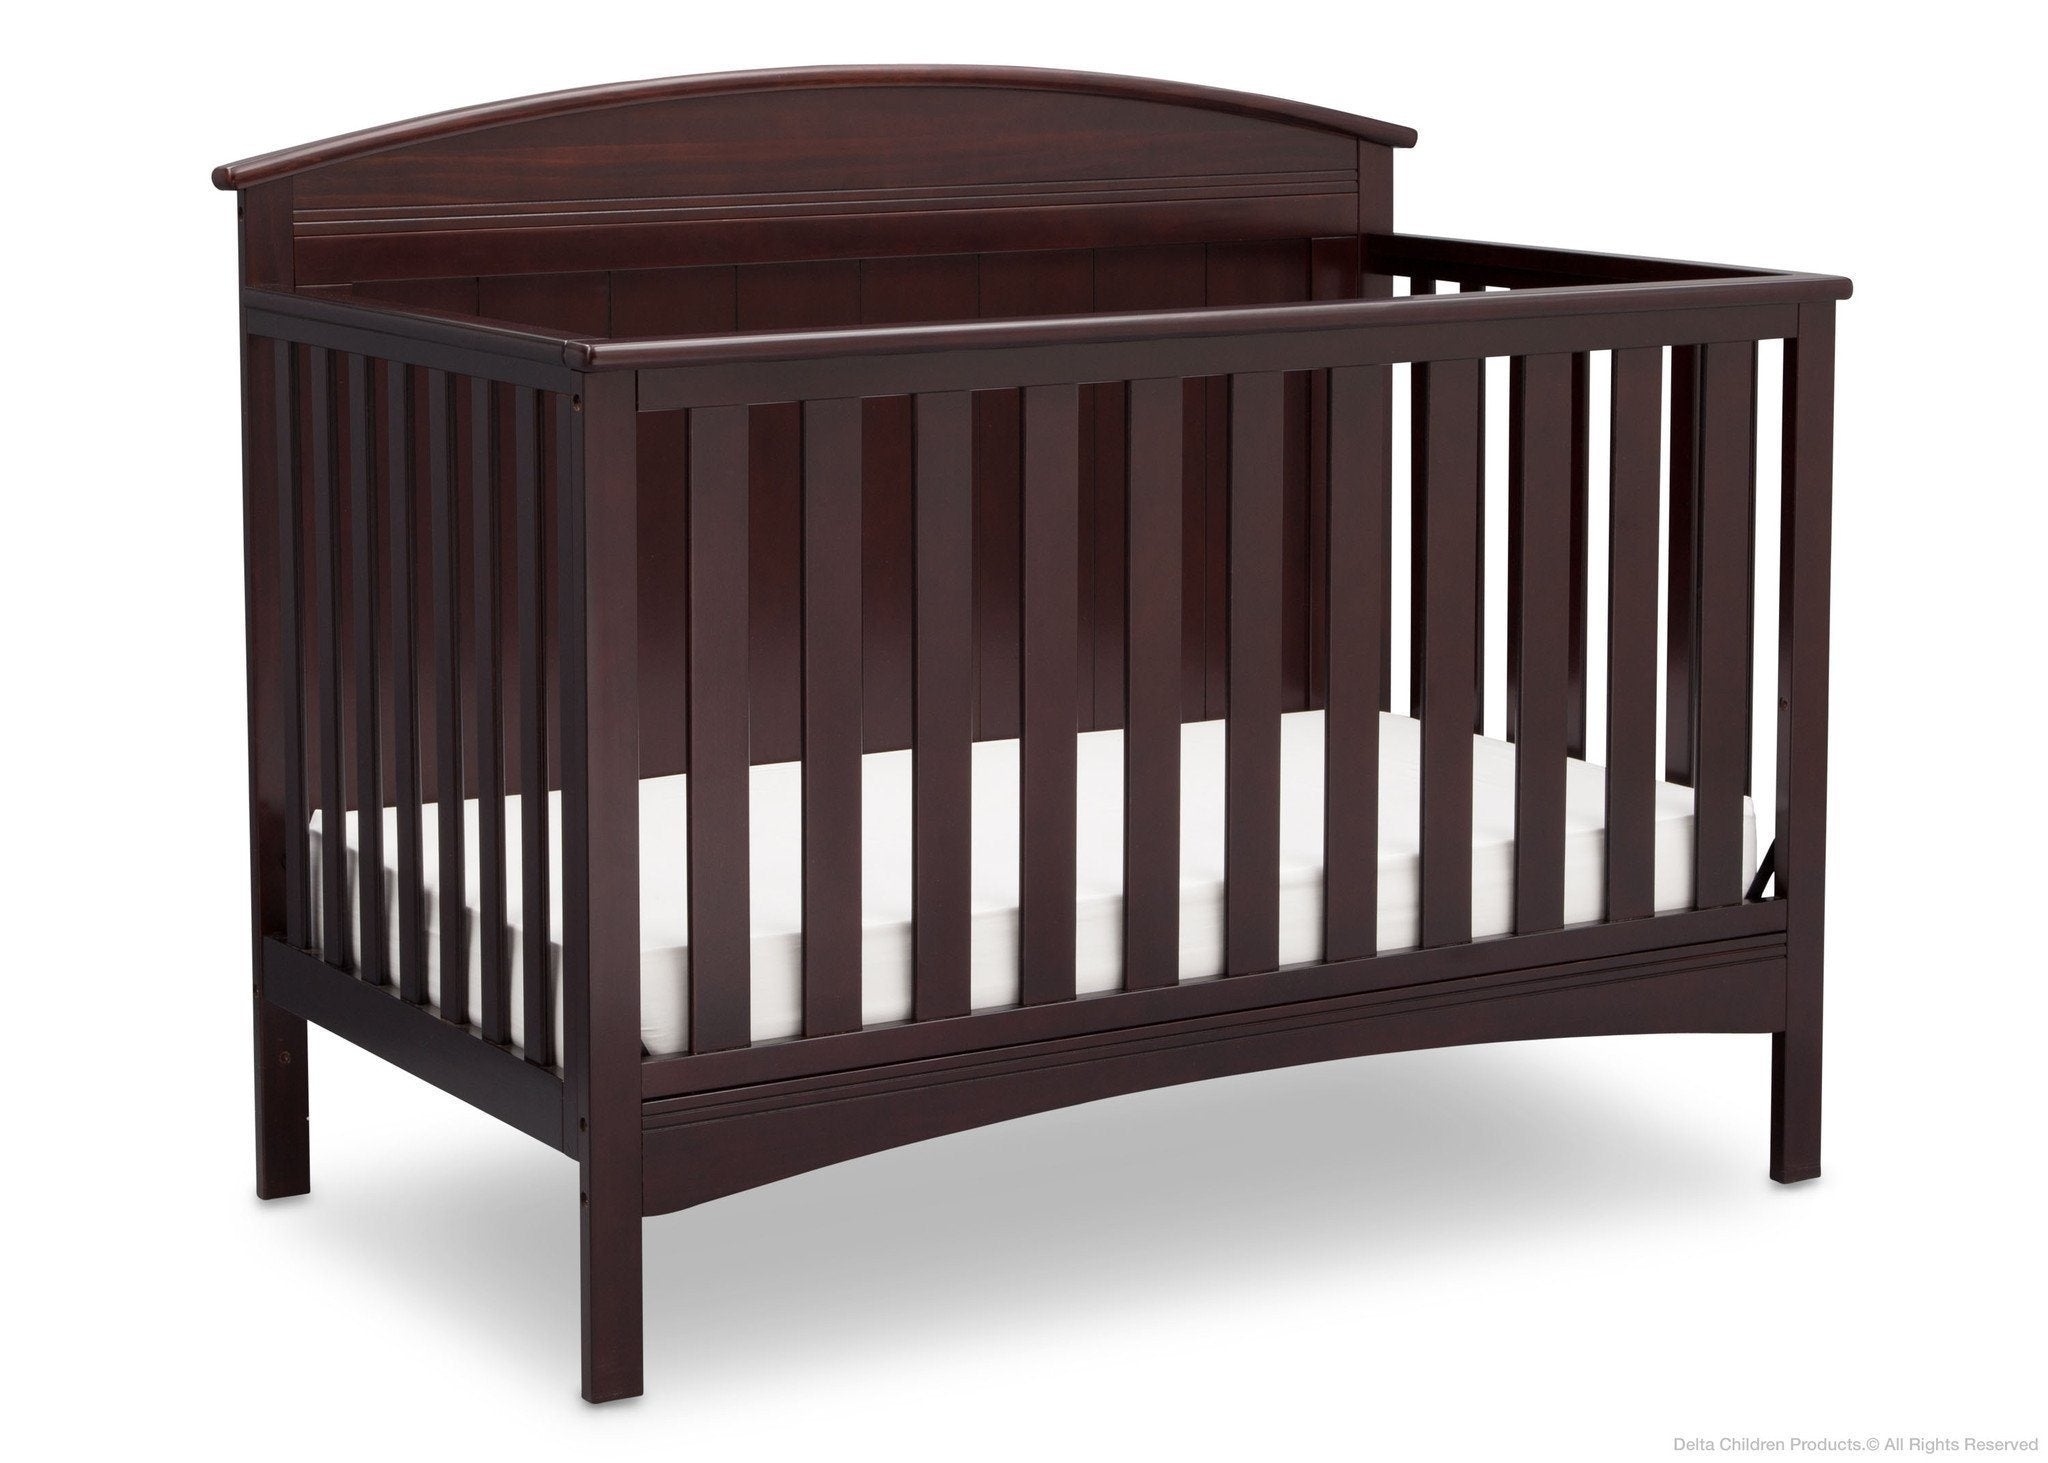 Delta Children Dark Chocolate (207) Archer 4-in-1 Crib Side View c3c